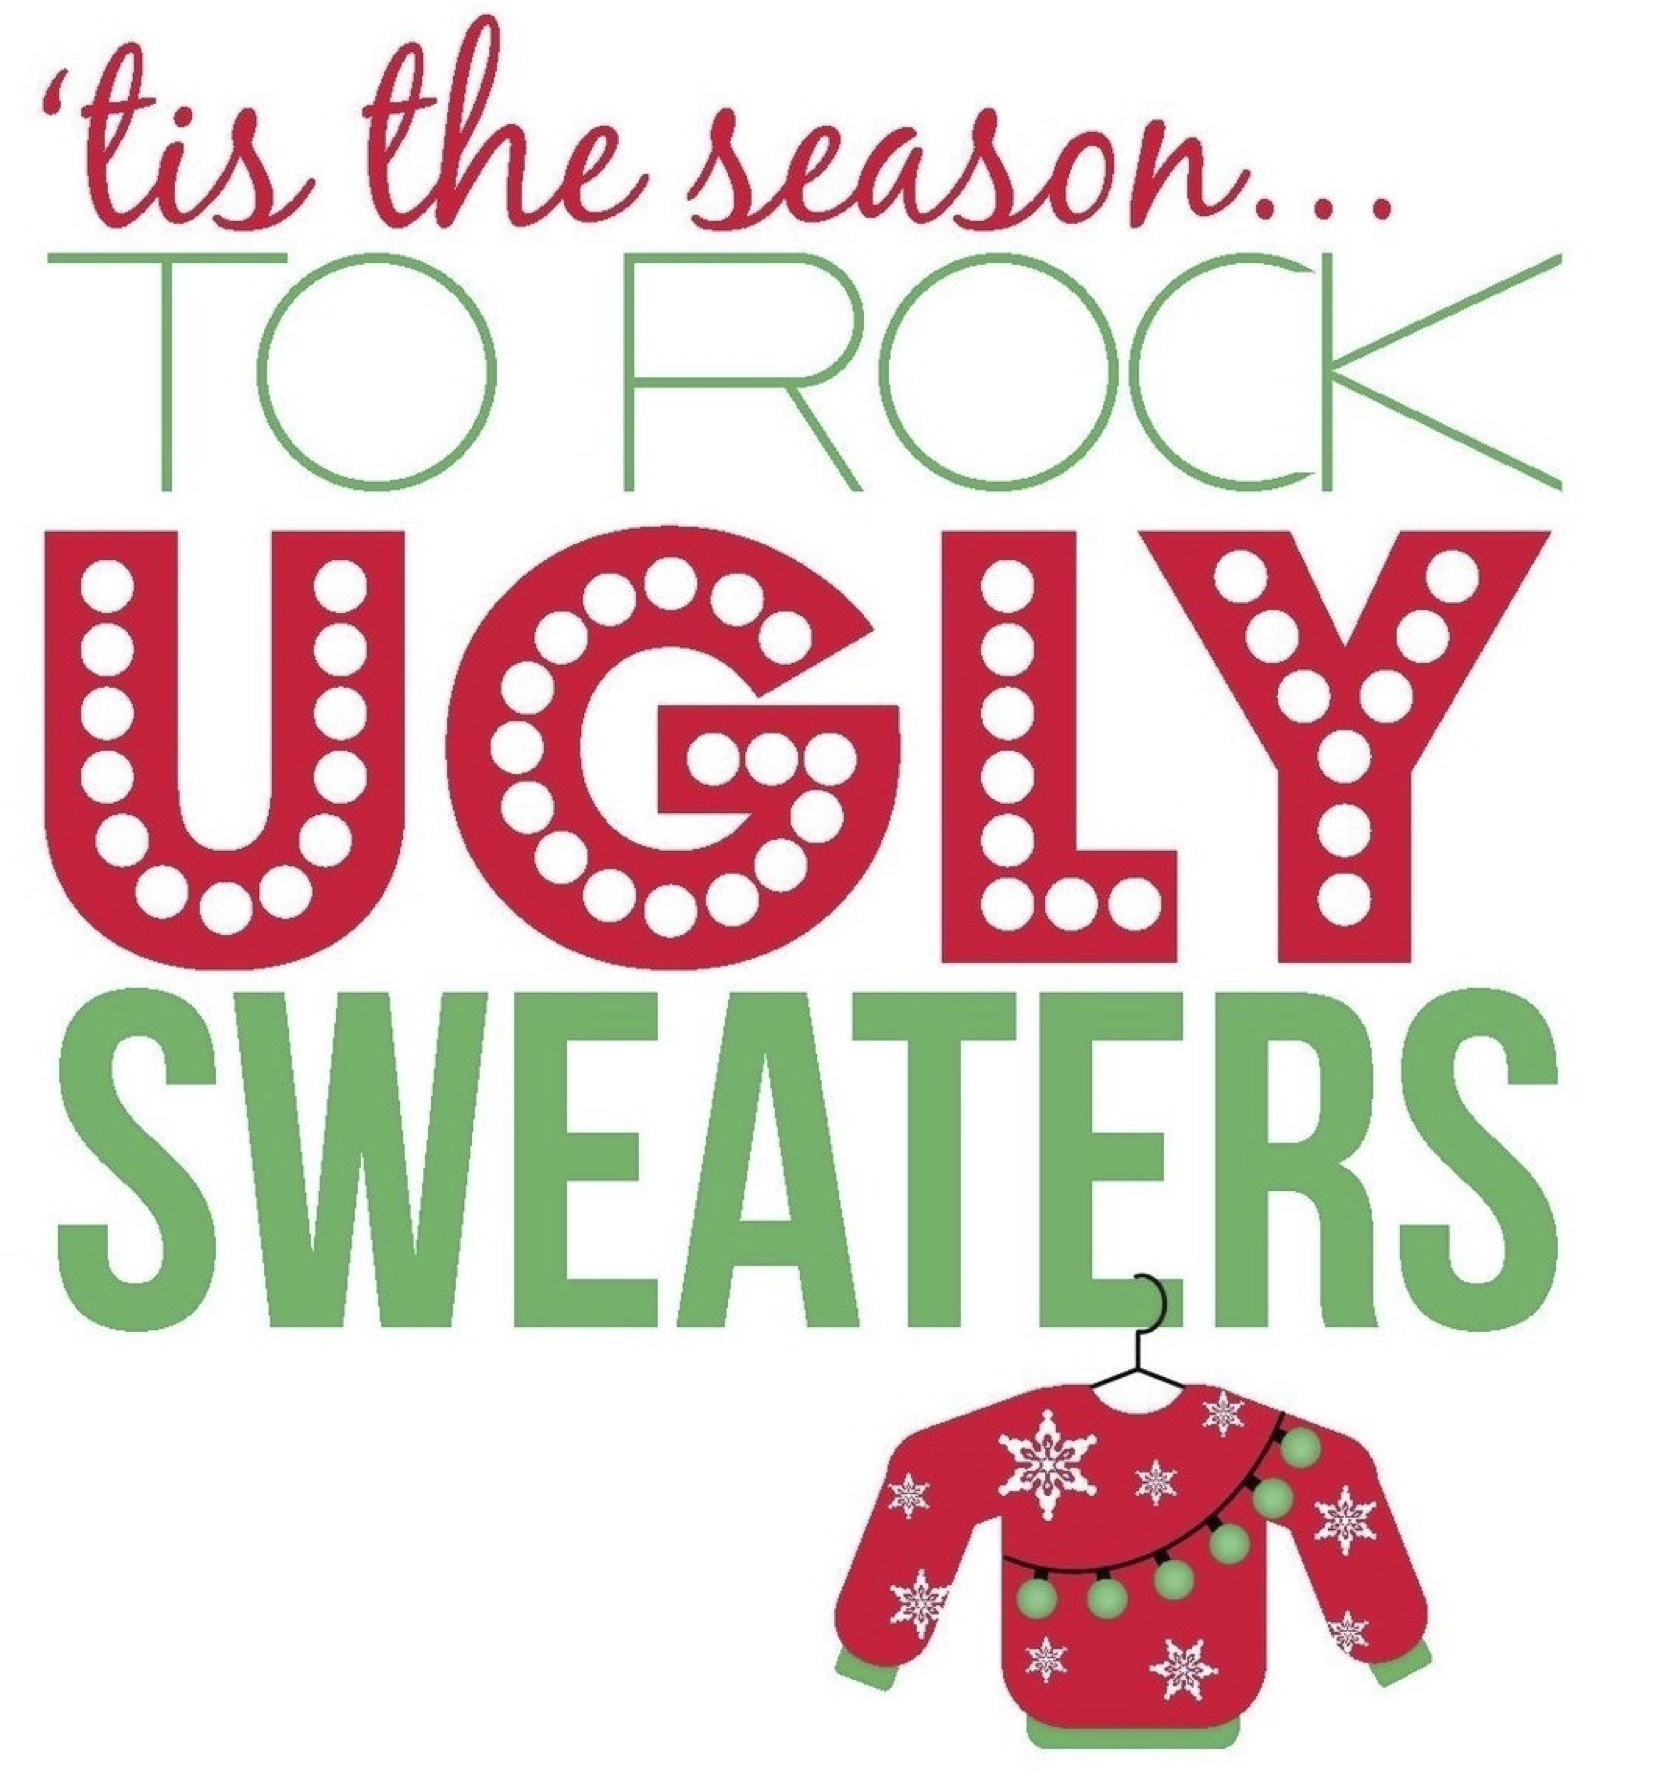 Christmas party ugly sweater party clipart clipartxtras